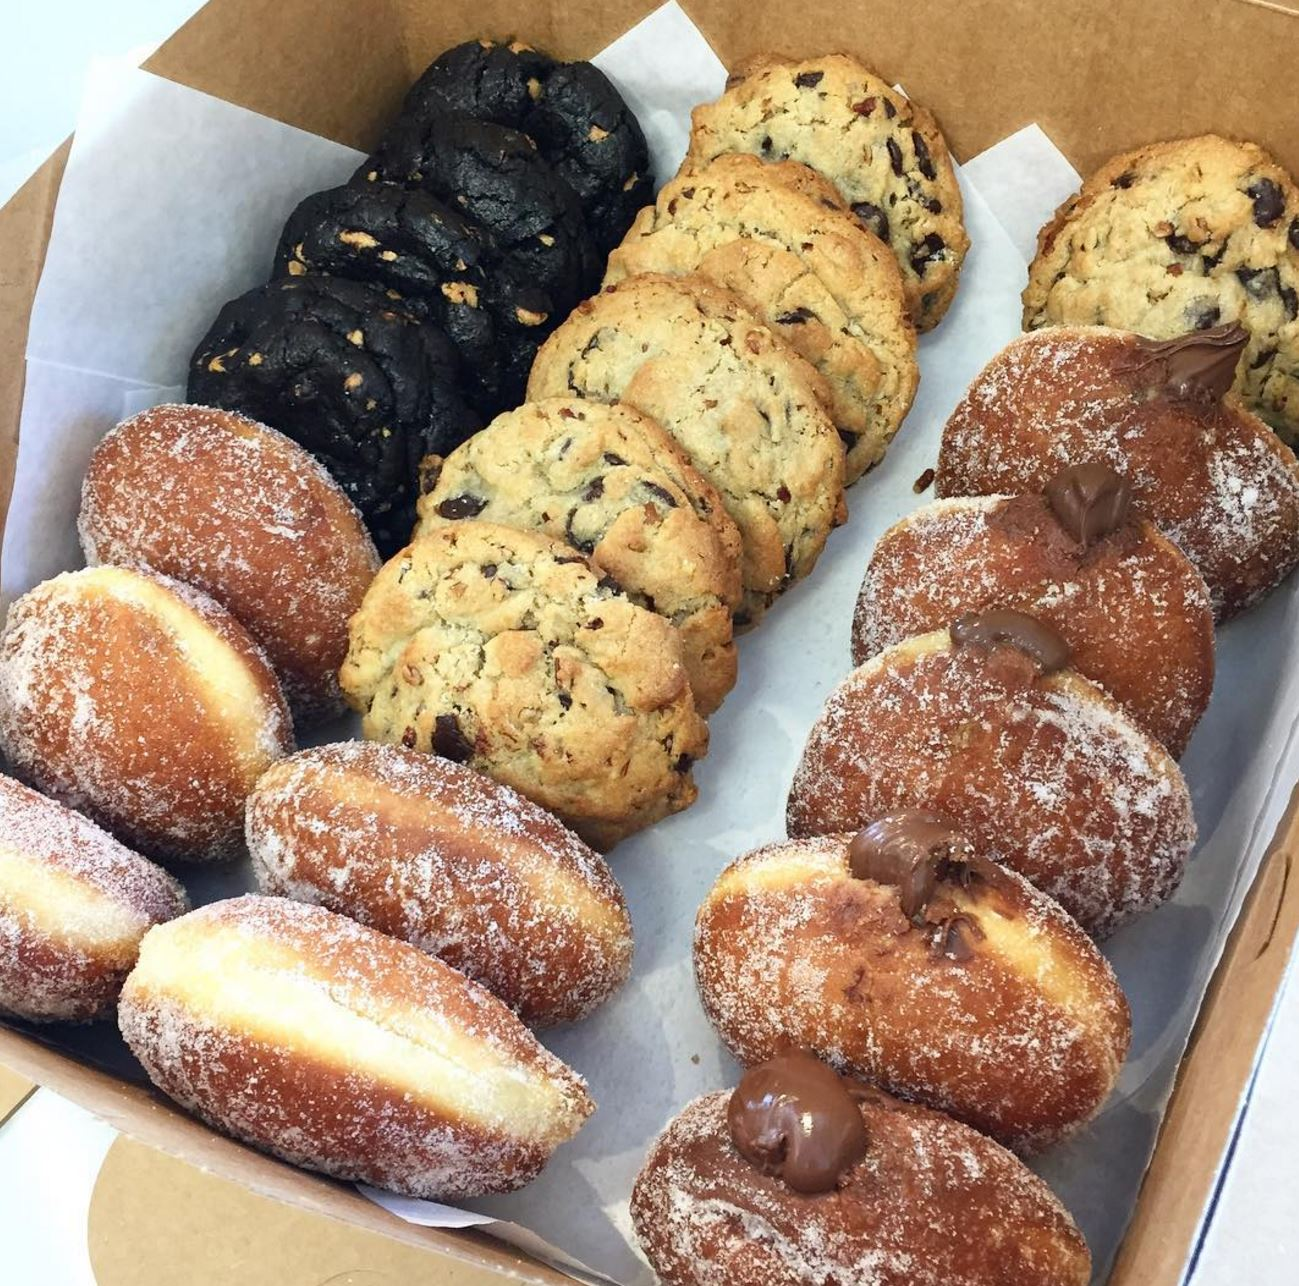 April 29 | Paderia Bakehouse in Fountain Valley Gives Out Free Malasadas